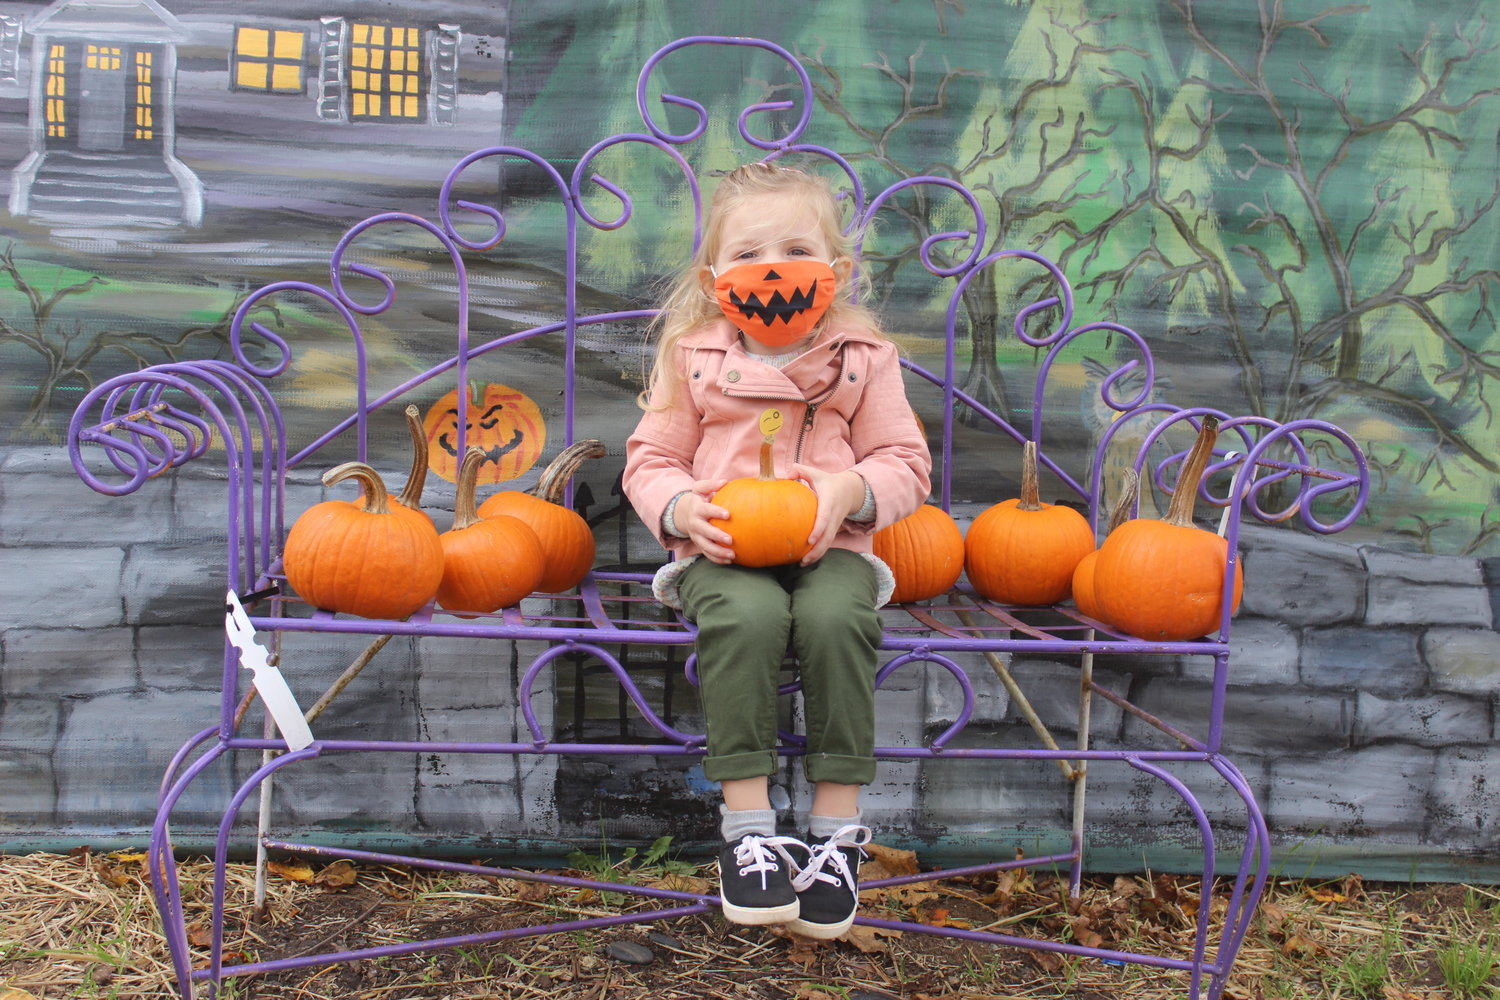 Madison Williams, 2, of East Meadow, was the pick of the pumpkin patch with her Halloween face mask last Sunday at Cipriano Nursery and Florist for its weekly pumpkin painting session.